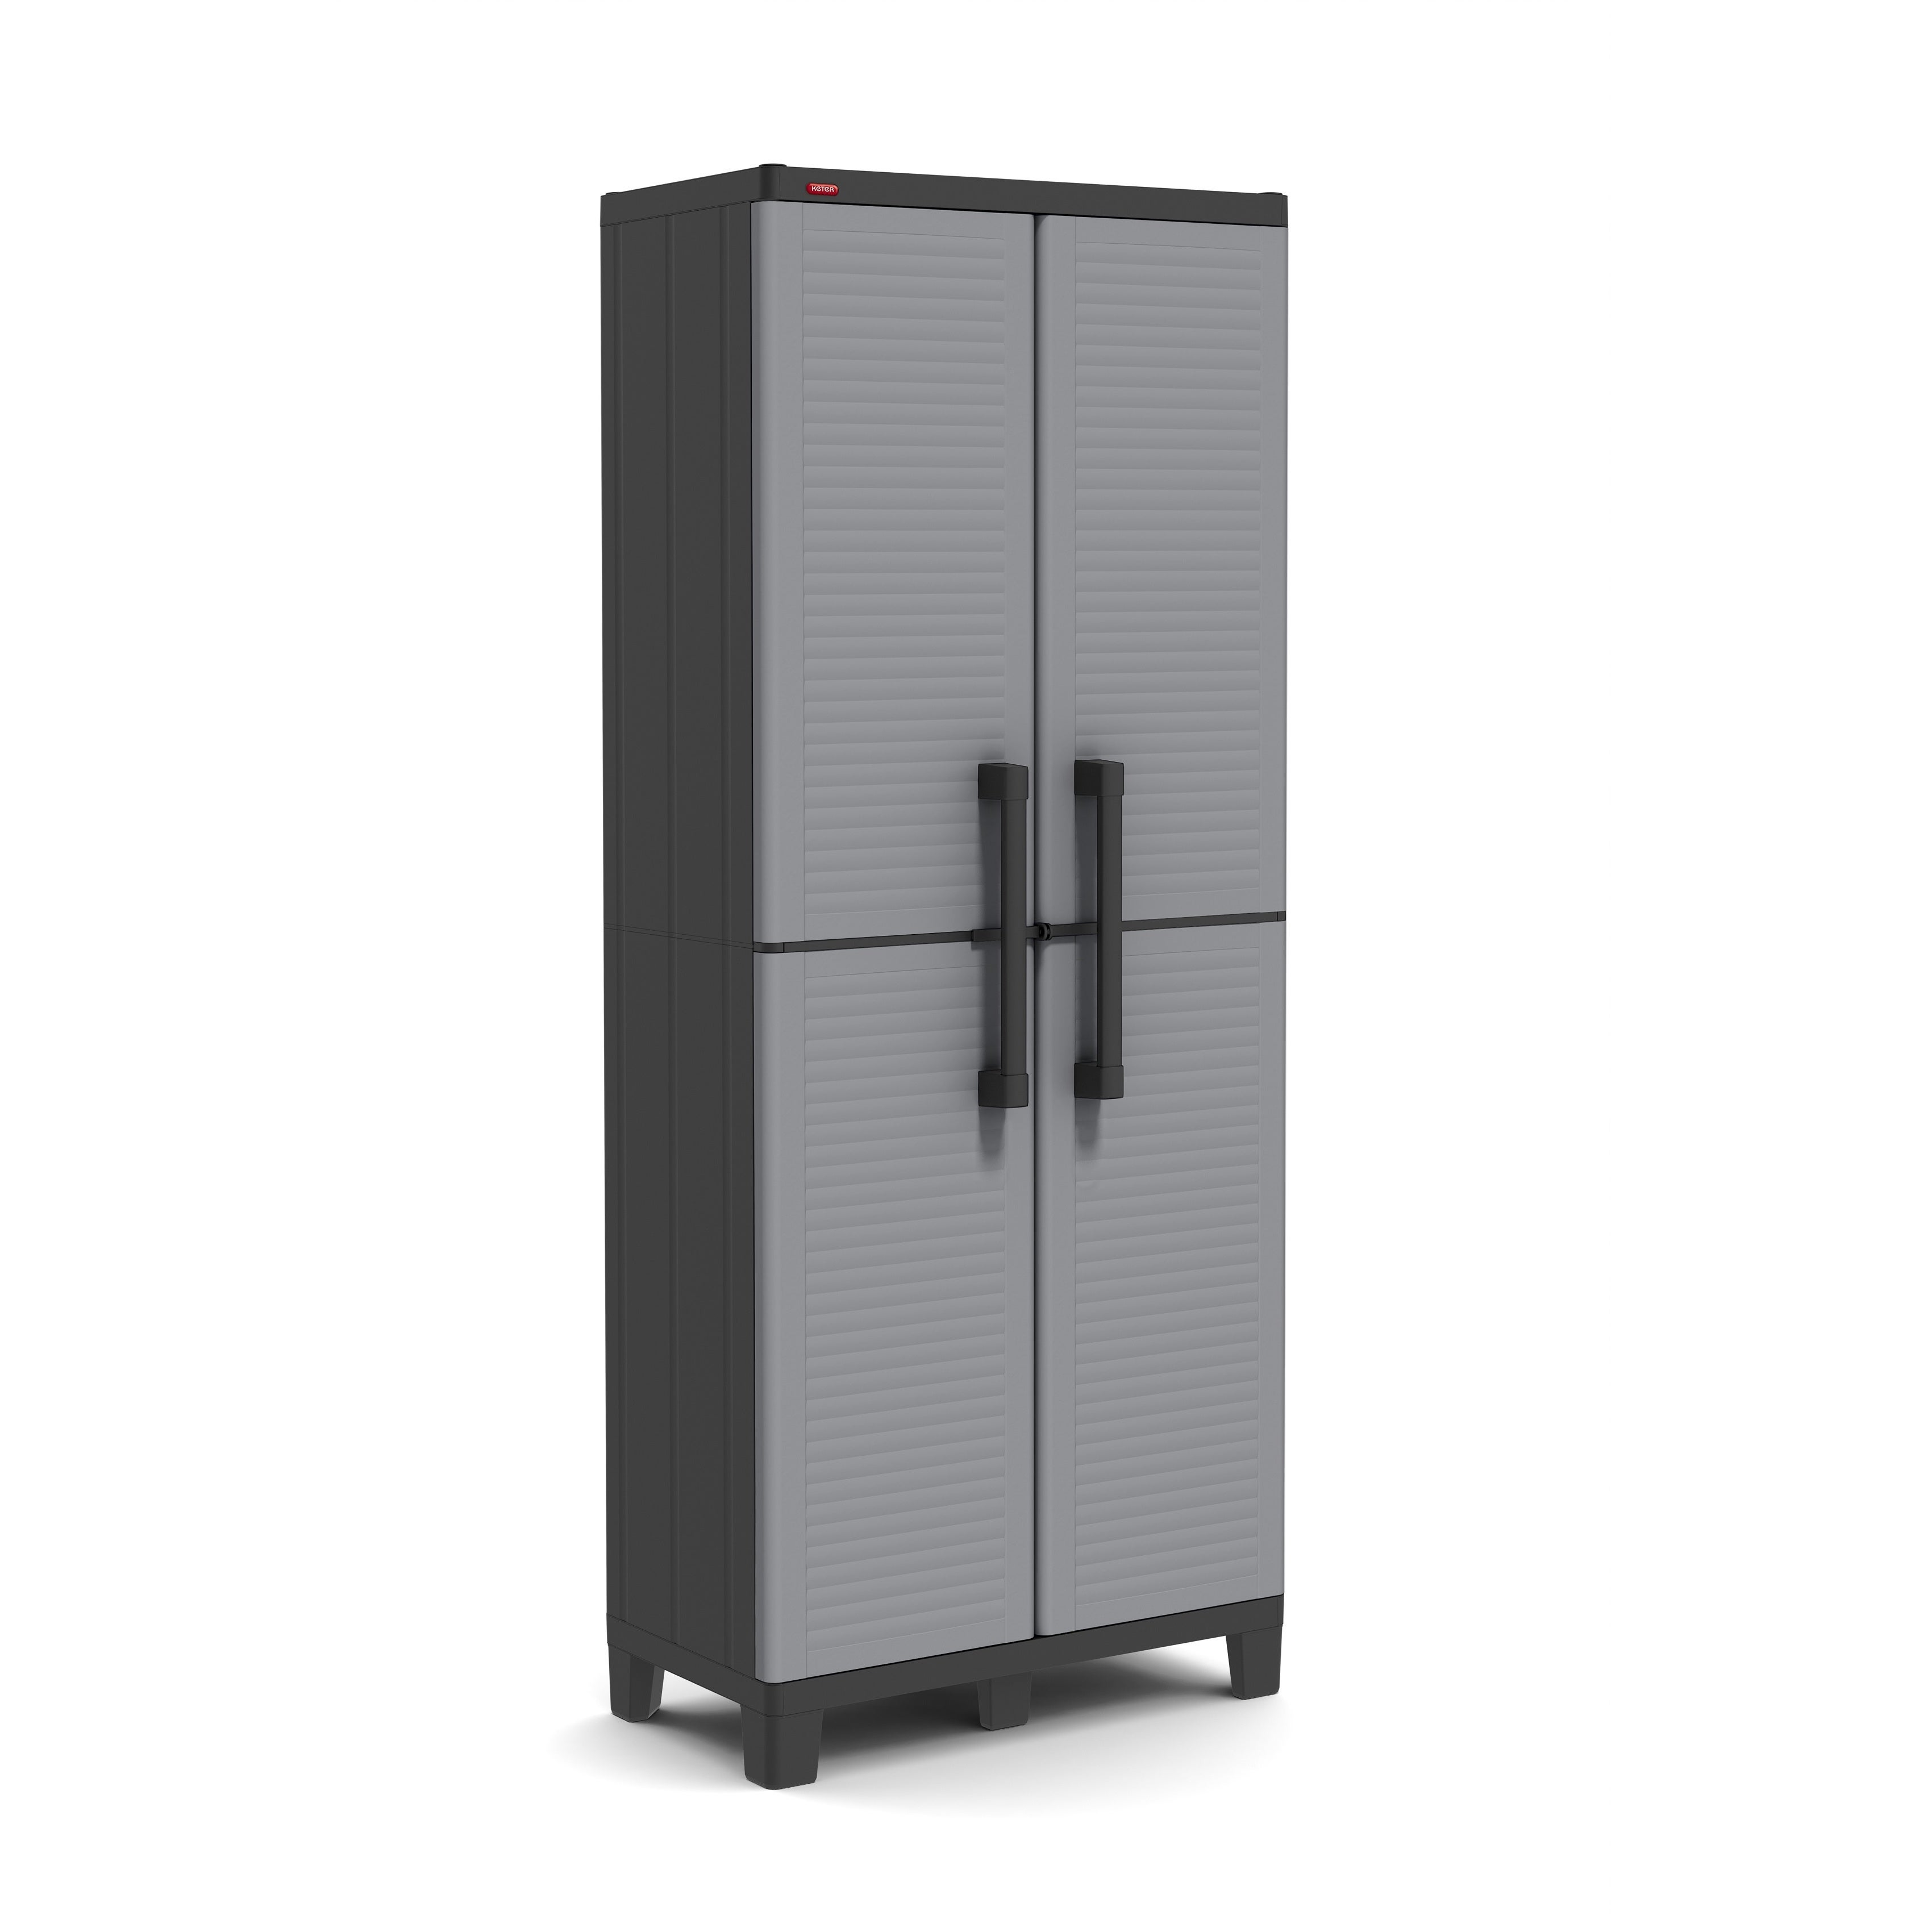 Keter E Winner Plastic Utility Storage Cabinet With Adjule Shelves Free Shipping Today 11780639